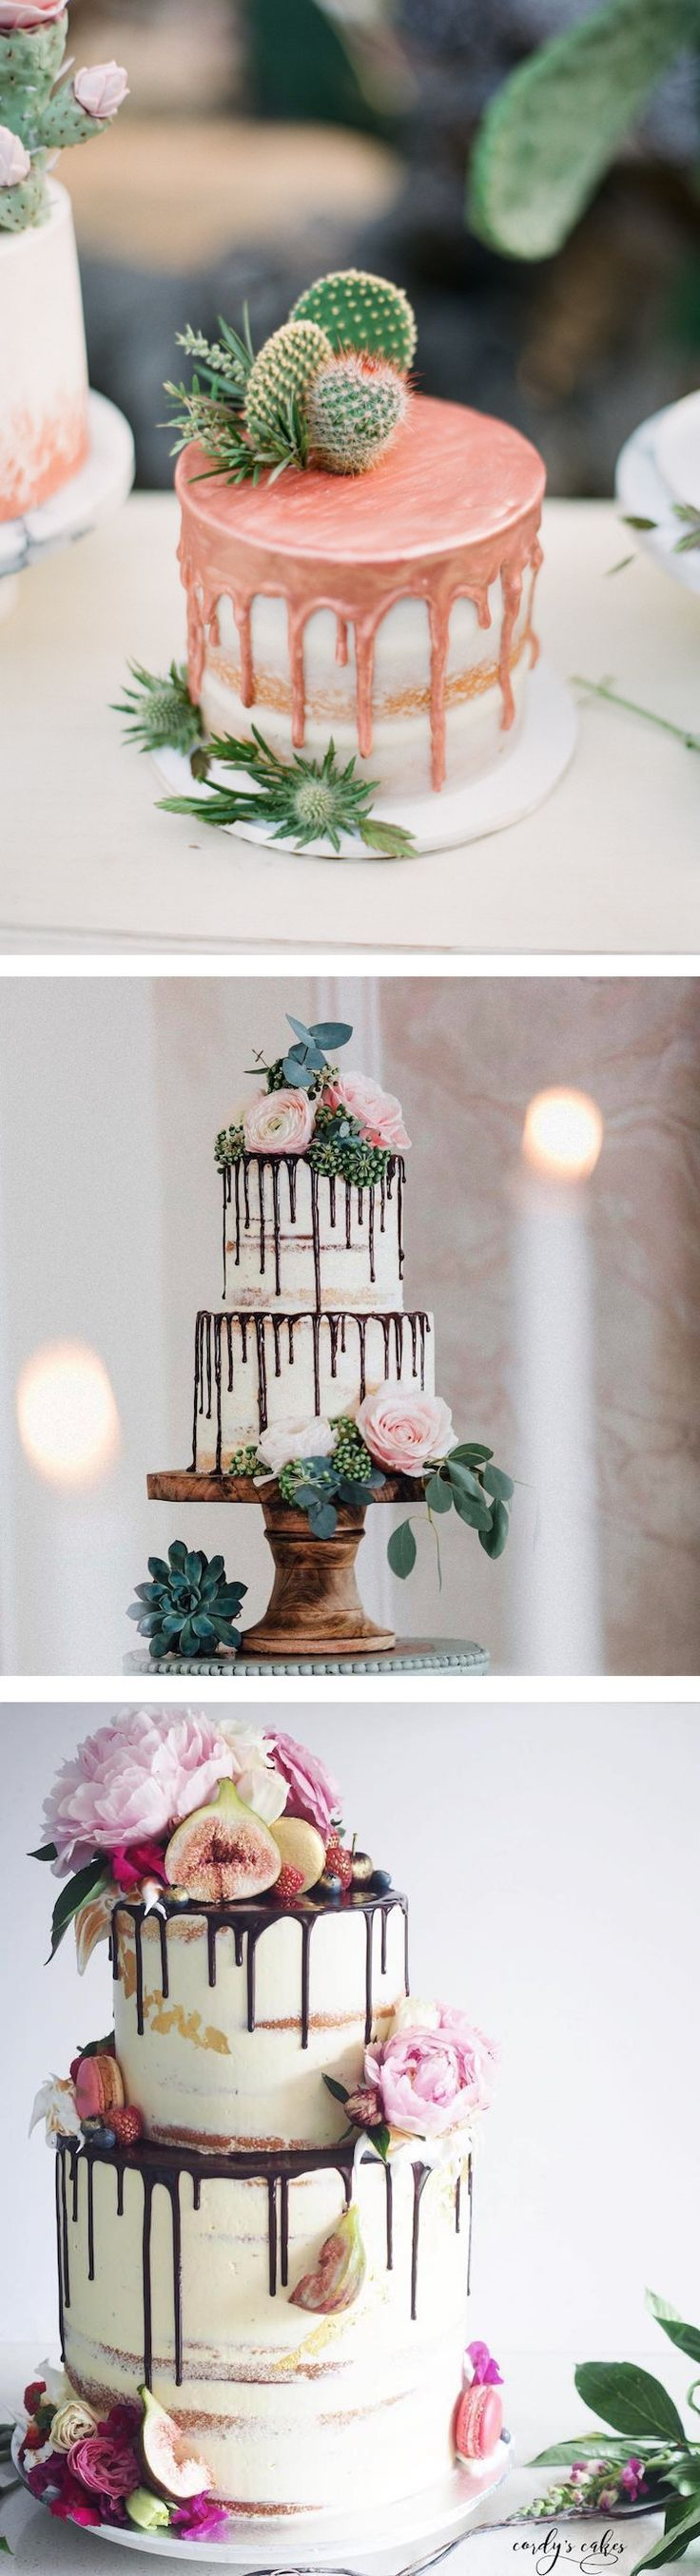 Drip cake // cake inspo // cake ideas // cake decorating ideas // cake trends